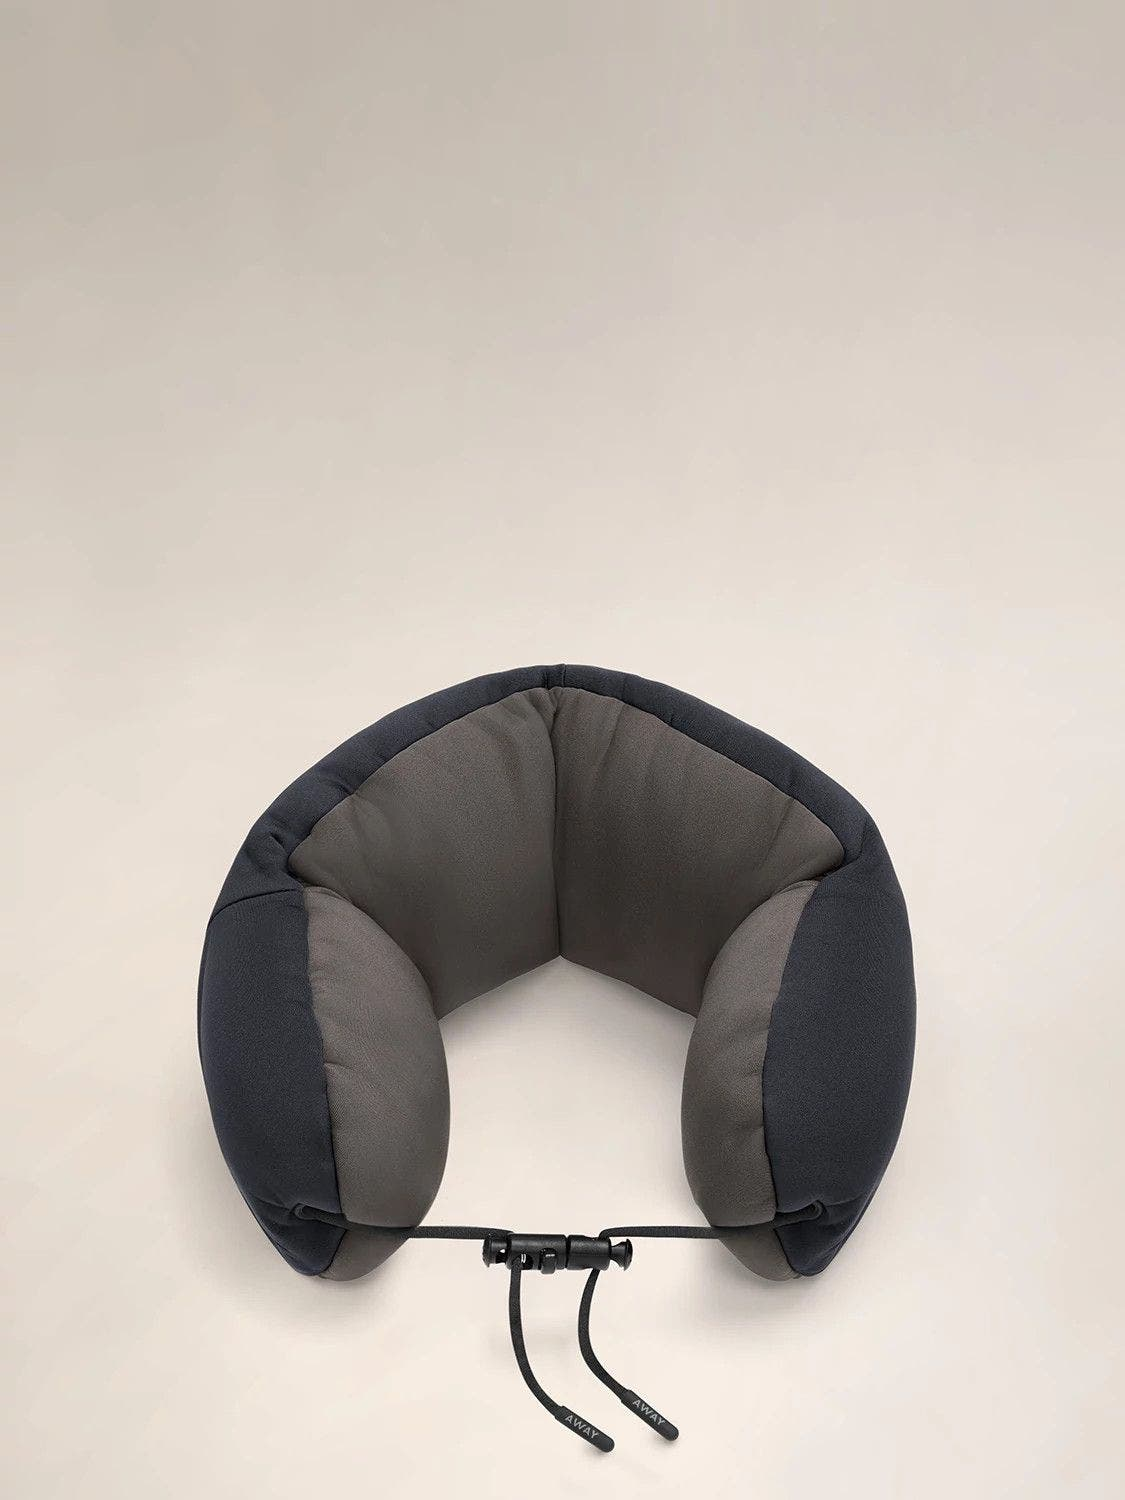 Aerial angled view of a navy and grey travel neck pillow with a string loop on one side.